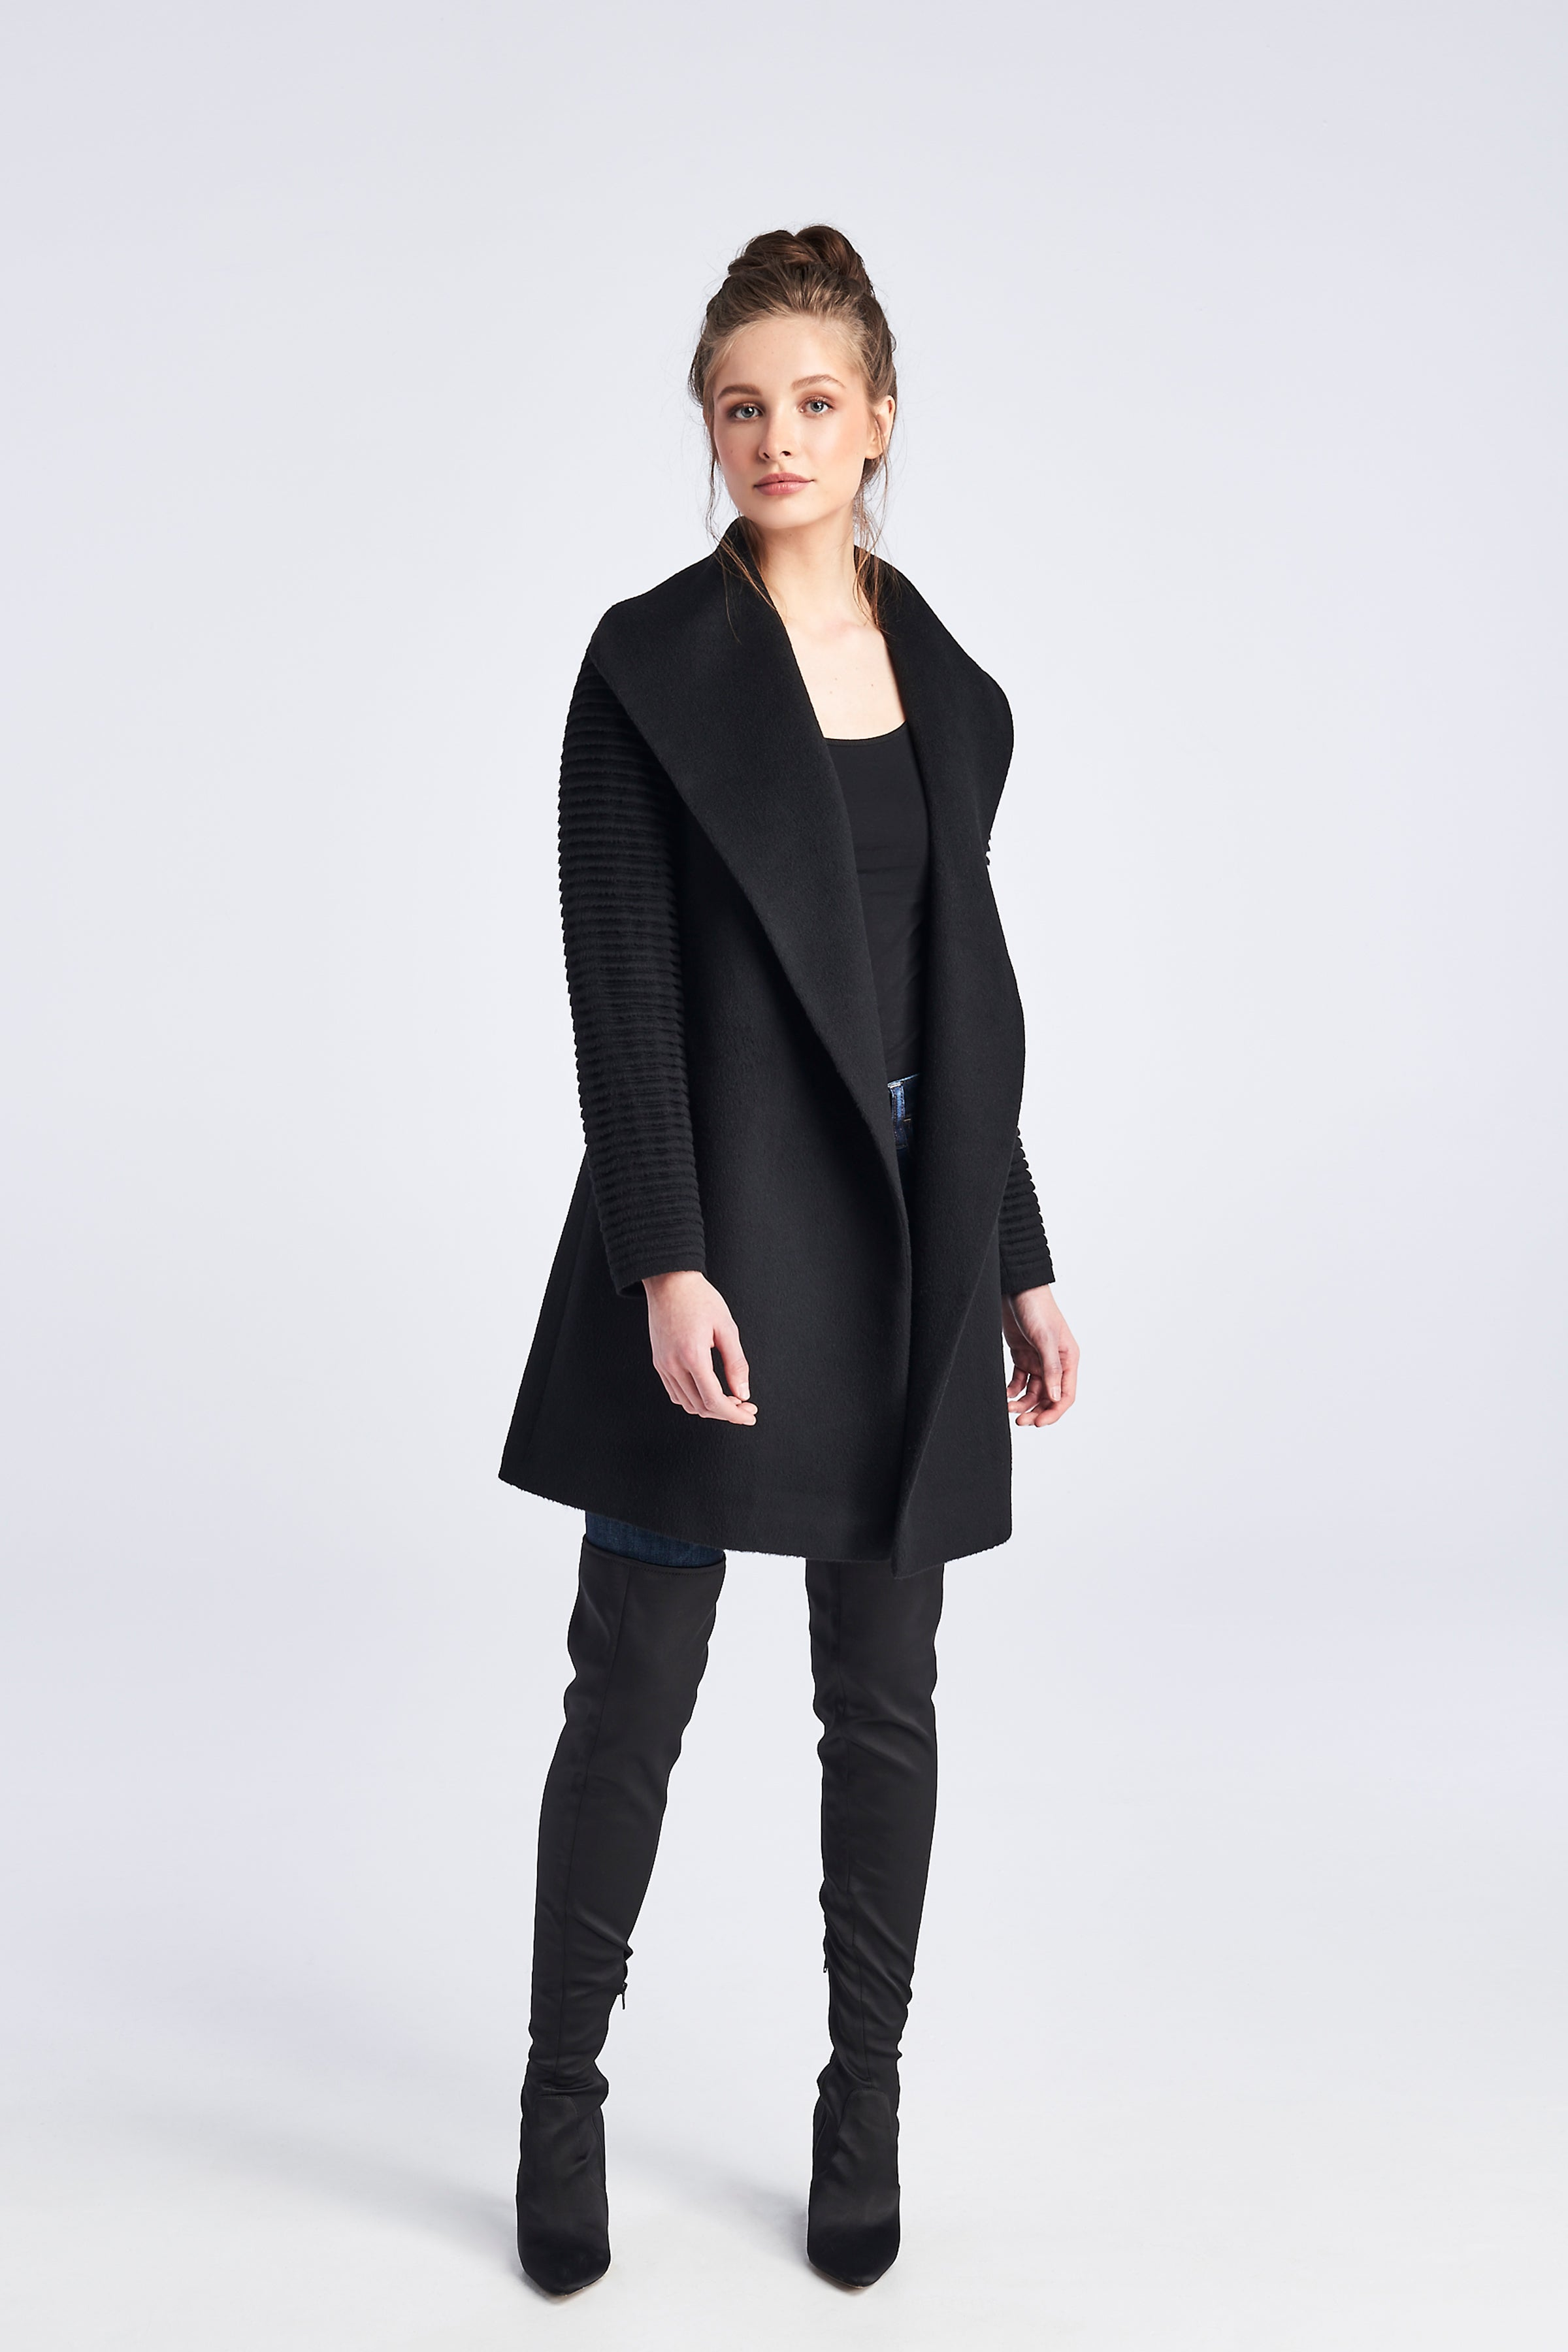 Ribbed Sleeves Mid Length Shawl Collar Coat Black